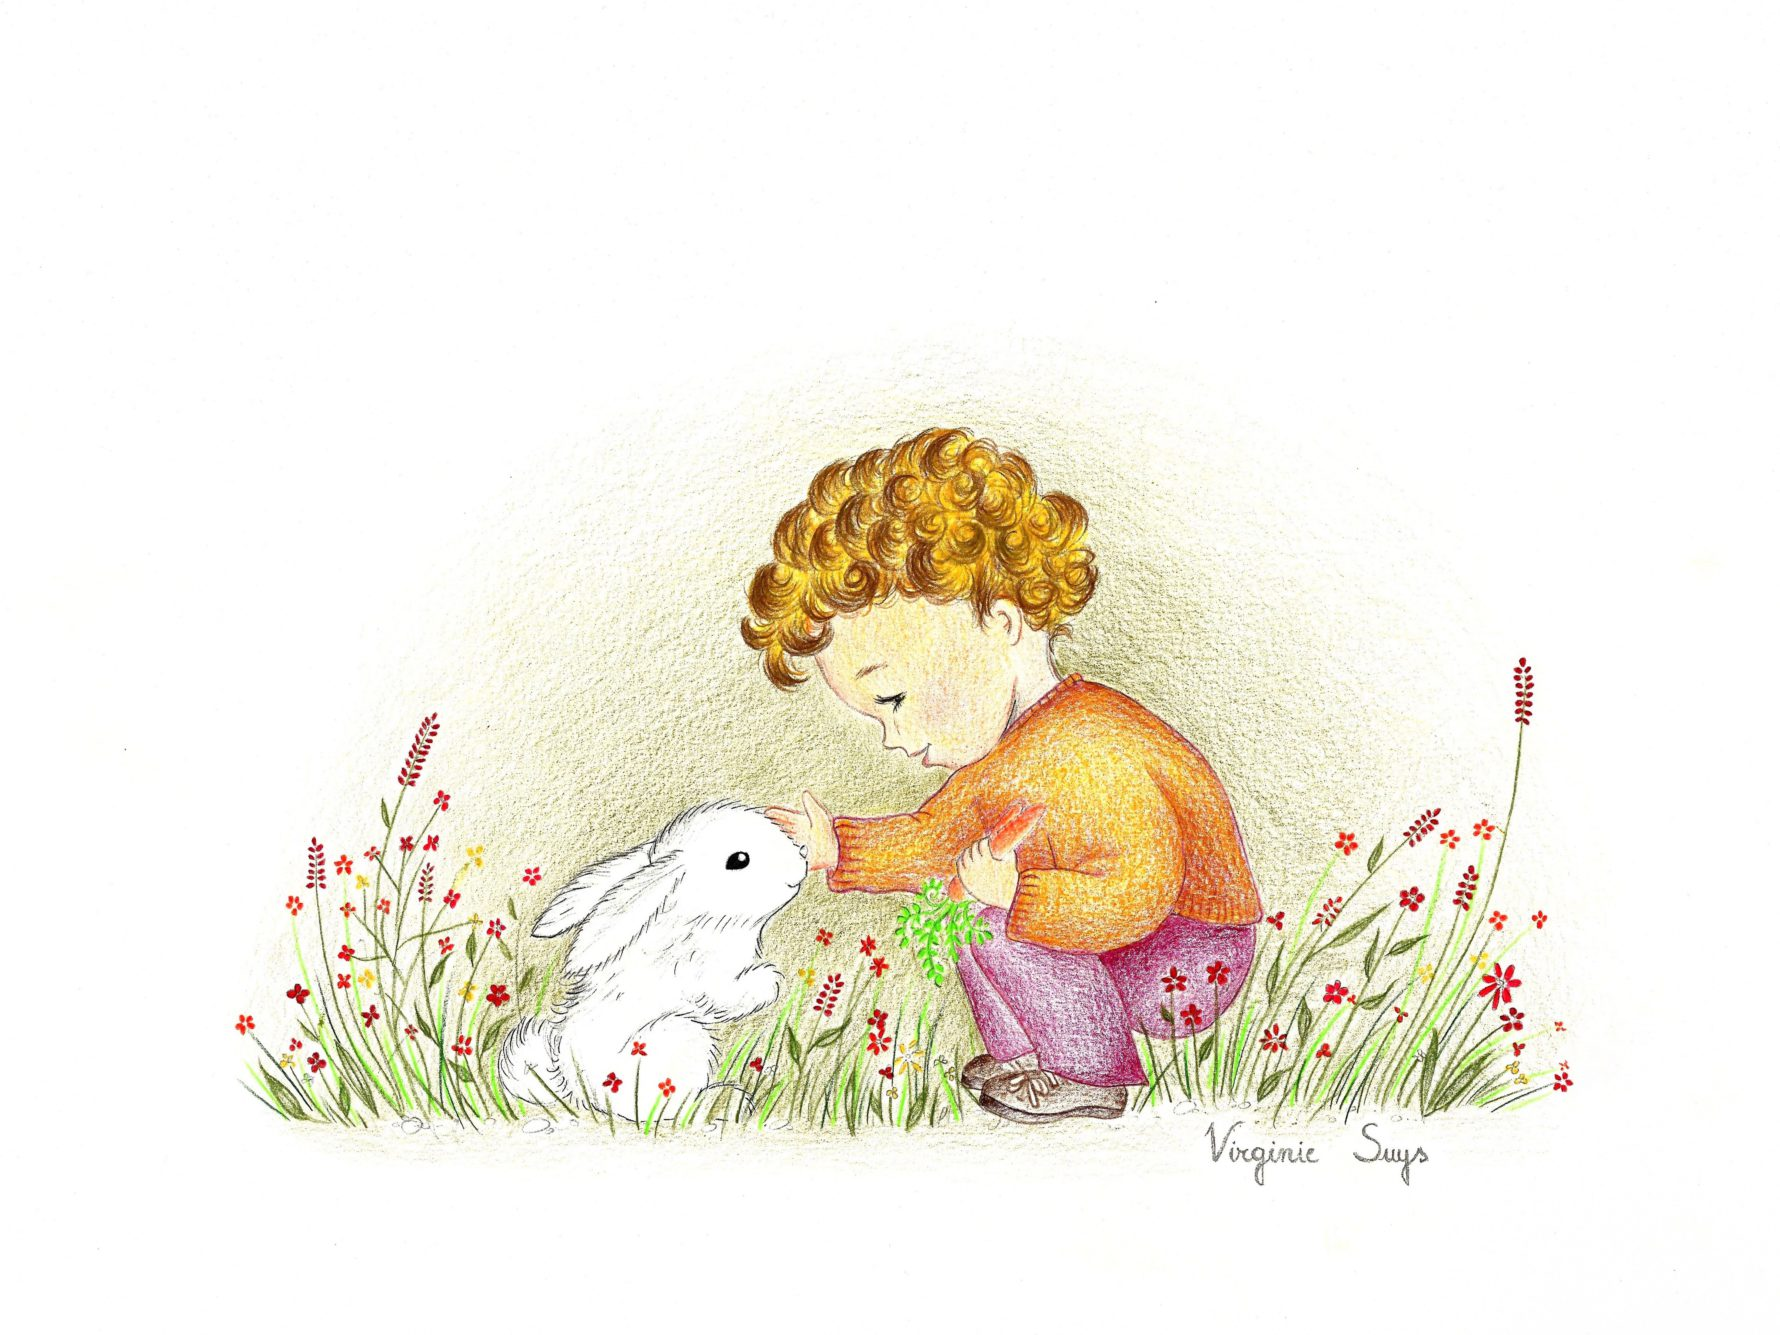 Virginie Suys Boy with rabbit in brown & purple illustration